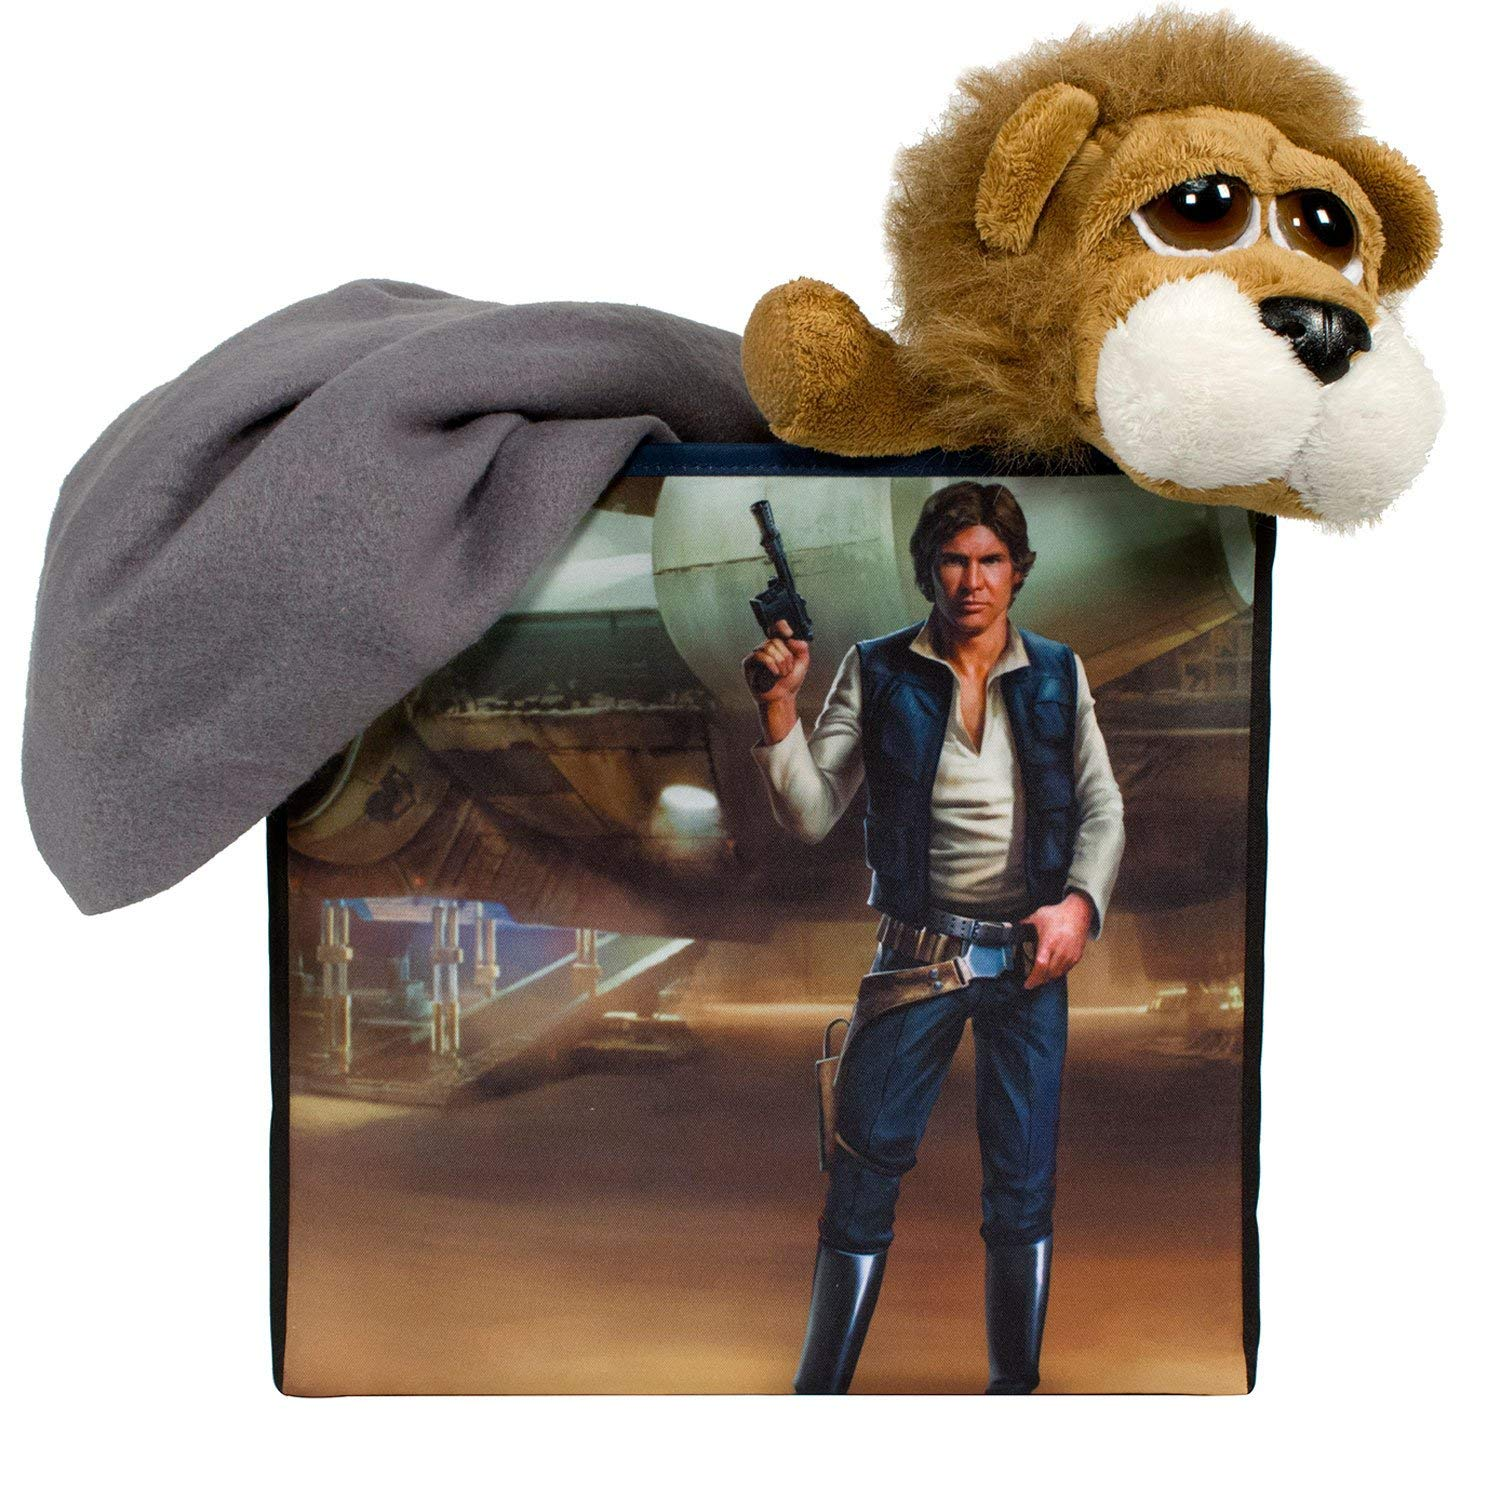 Star Wars Han Solo Collapsible Storage Bin by Disney - Cube Organizer for Closet, Kids Bedroom Box, Playroom Chest - Foldable Home Decor Basket Container with Strong Handles and Design